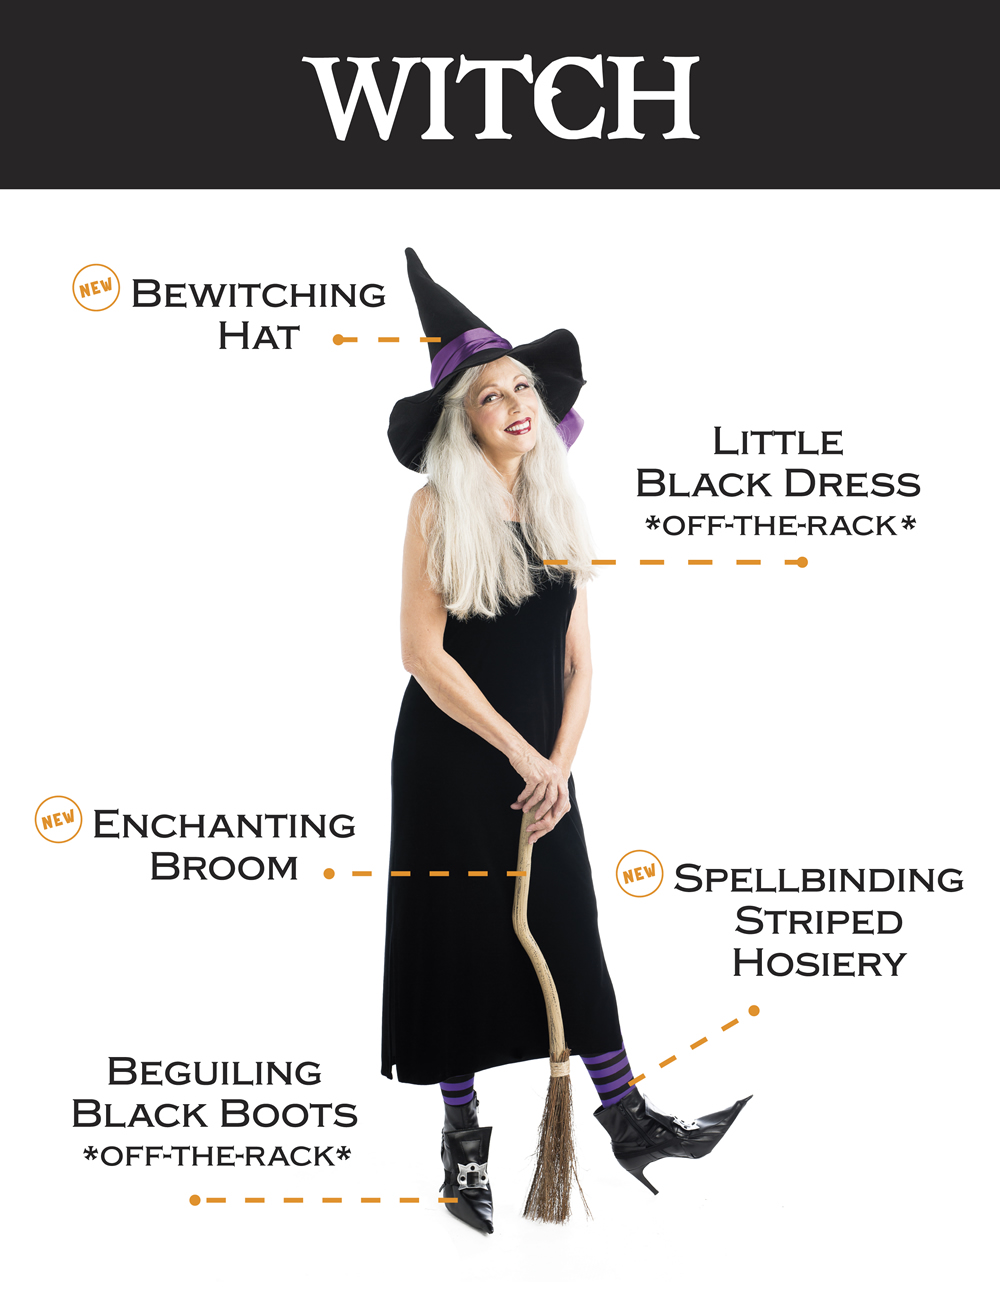 Witch: Bewitching Hat, Little black dress, enchanting broom, spellbinding striped hosiery